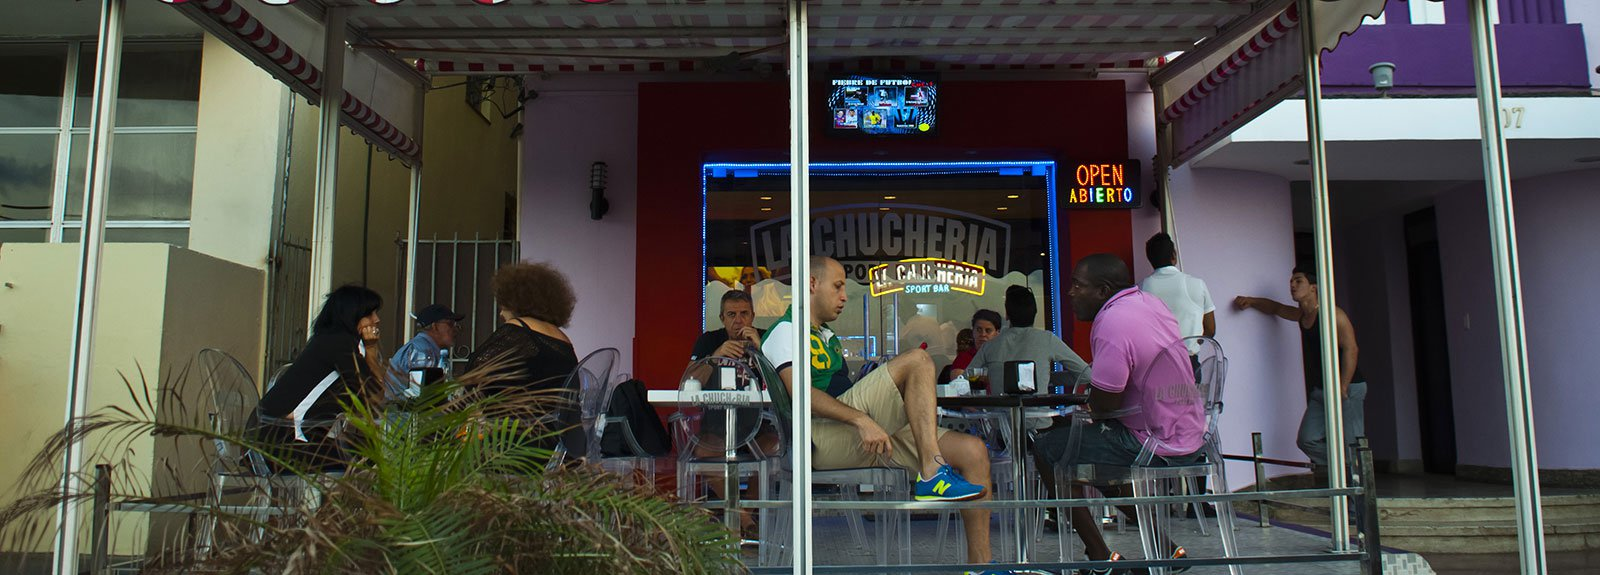 eople eating and drinking at Chucheria restaurant outdoors terrace in Vedado, transparent table and chairs